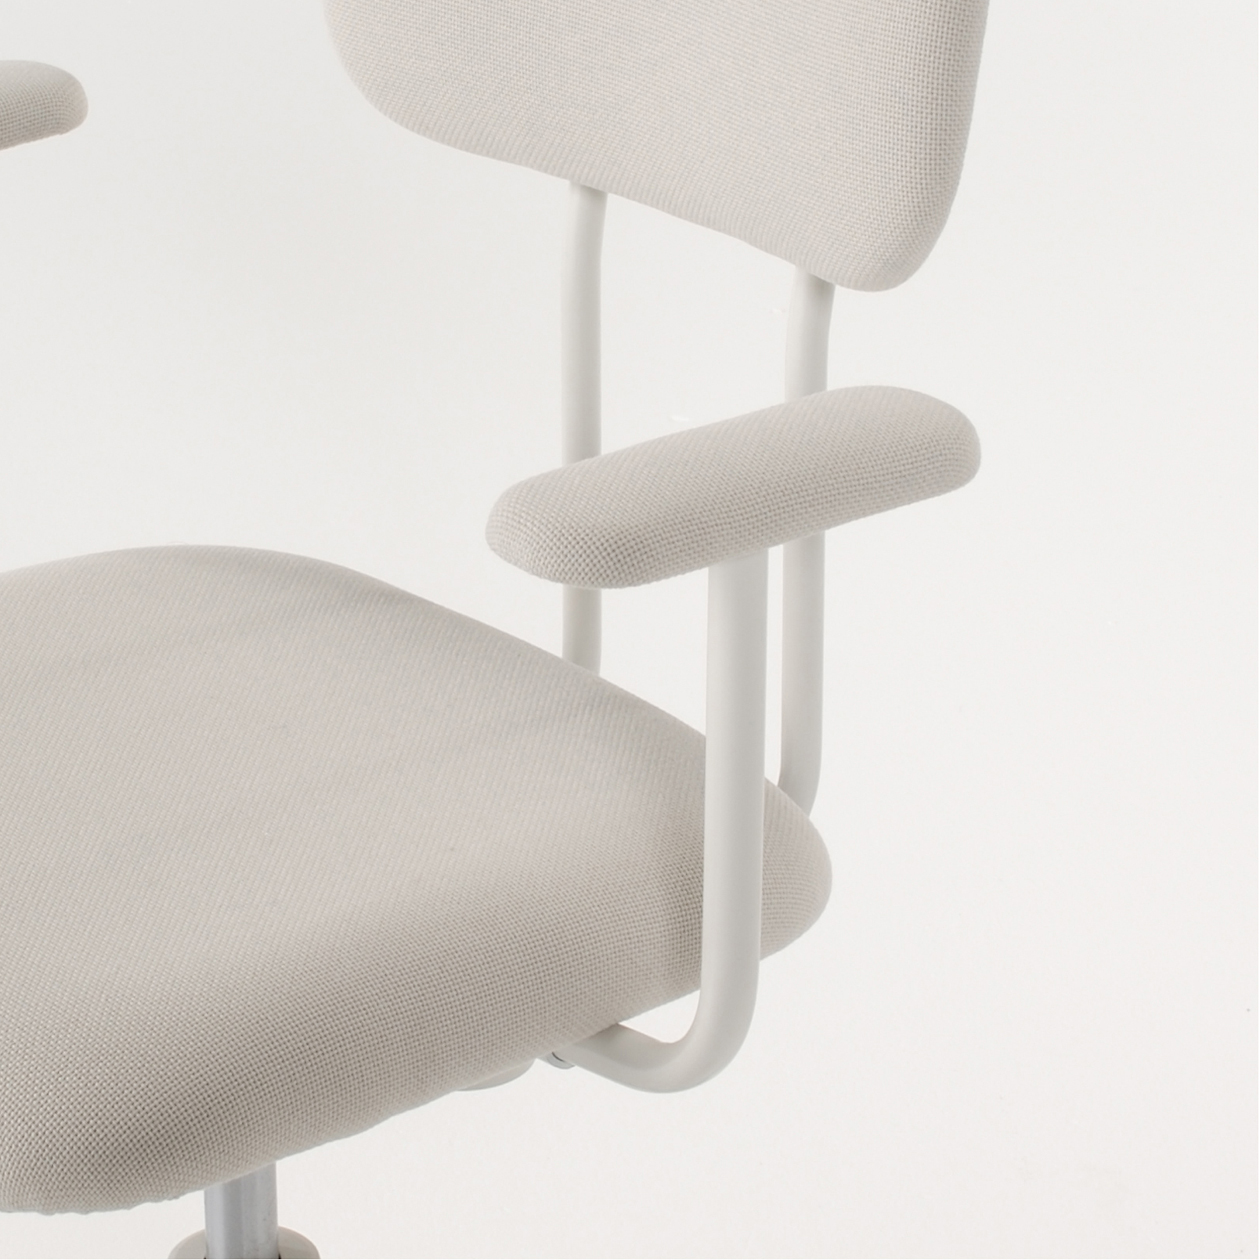 muji office chair. Arm Rest For Working Chair Muji Office G